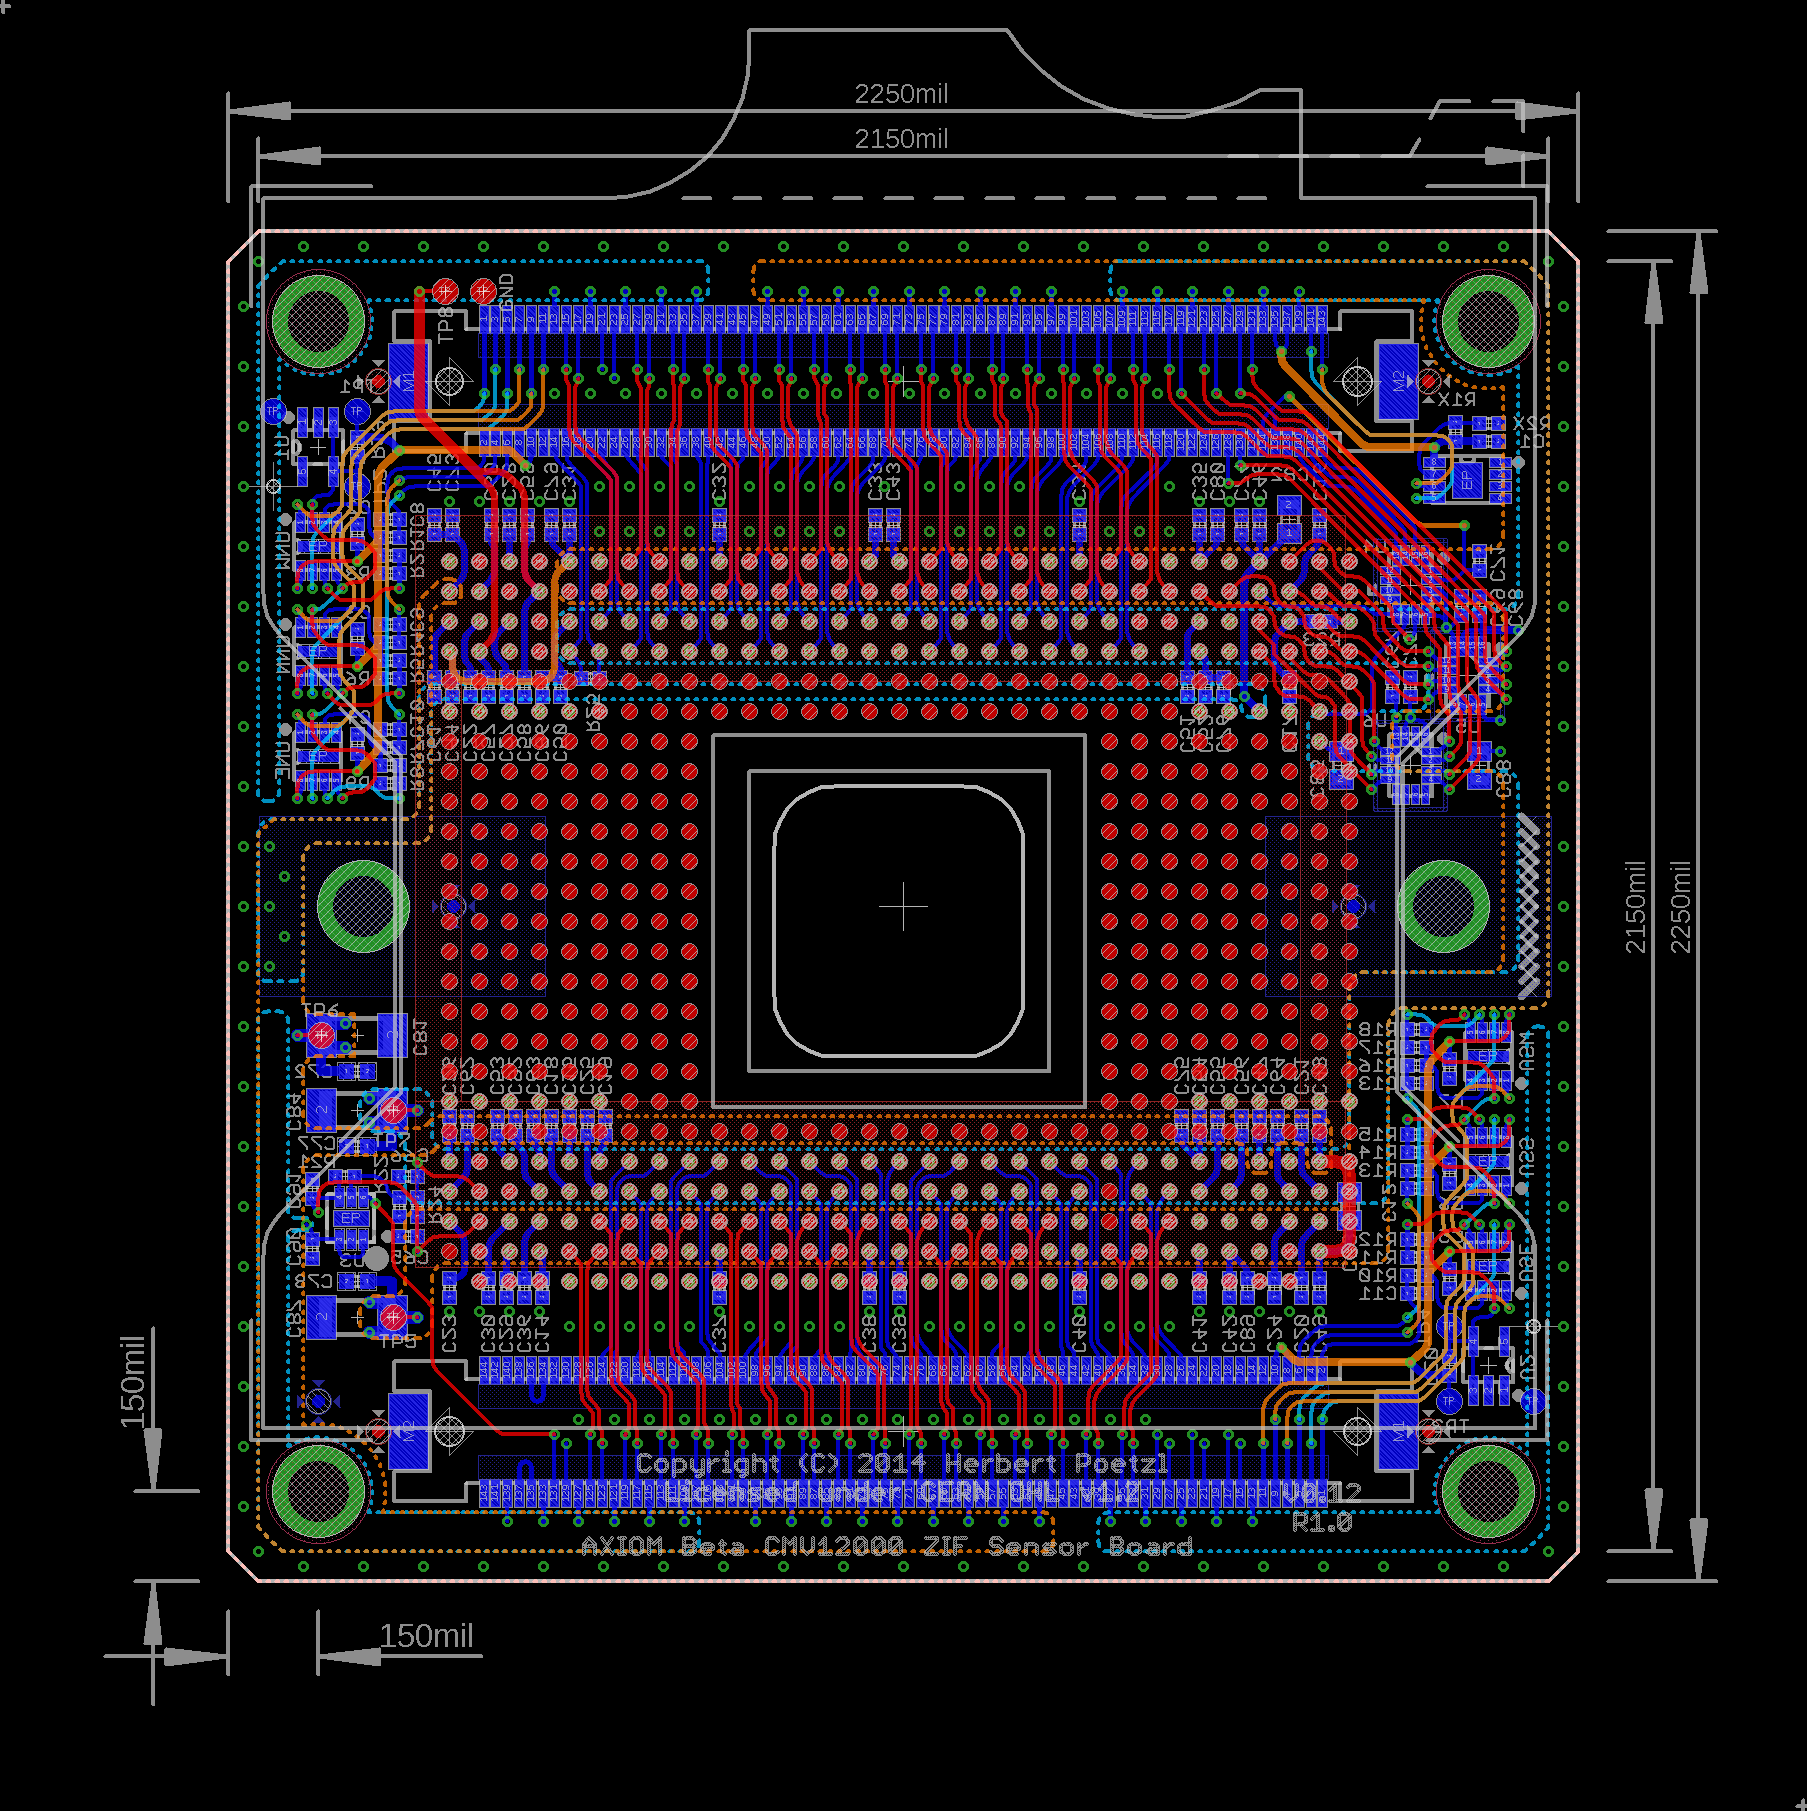 Axiom Beta Progress Report Ii Apertus Open Source Cinema Schematic Available In Pdf And Eagle Formats The Download Schematics Pcb Layout